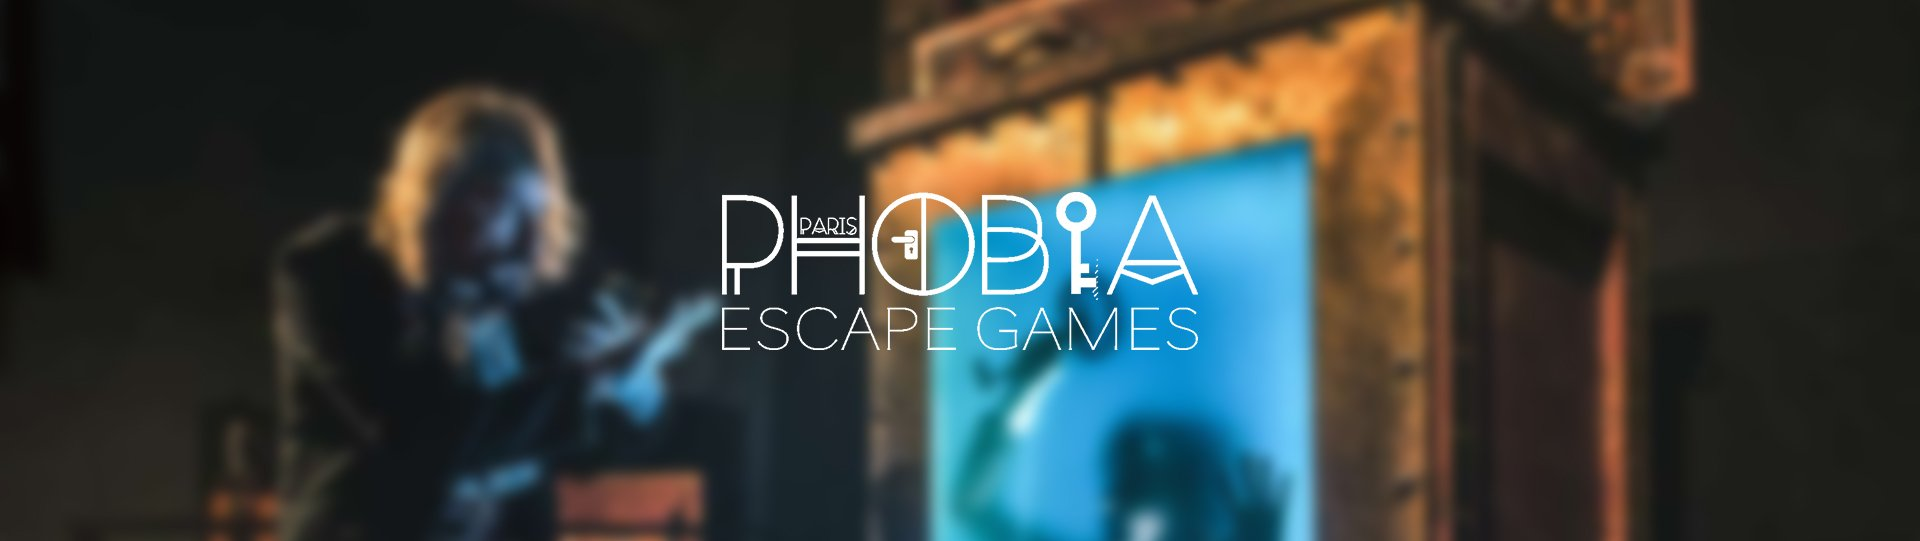 Escape game Phobia à Paris.jpg